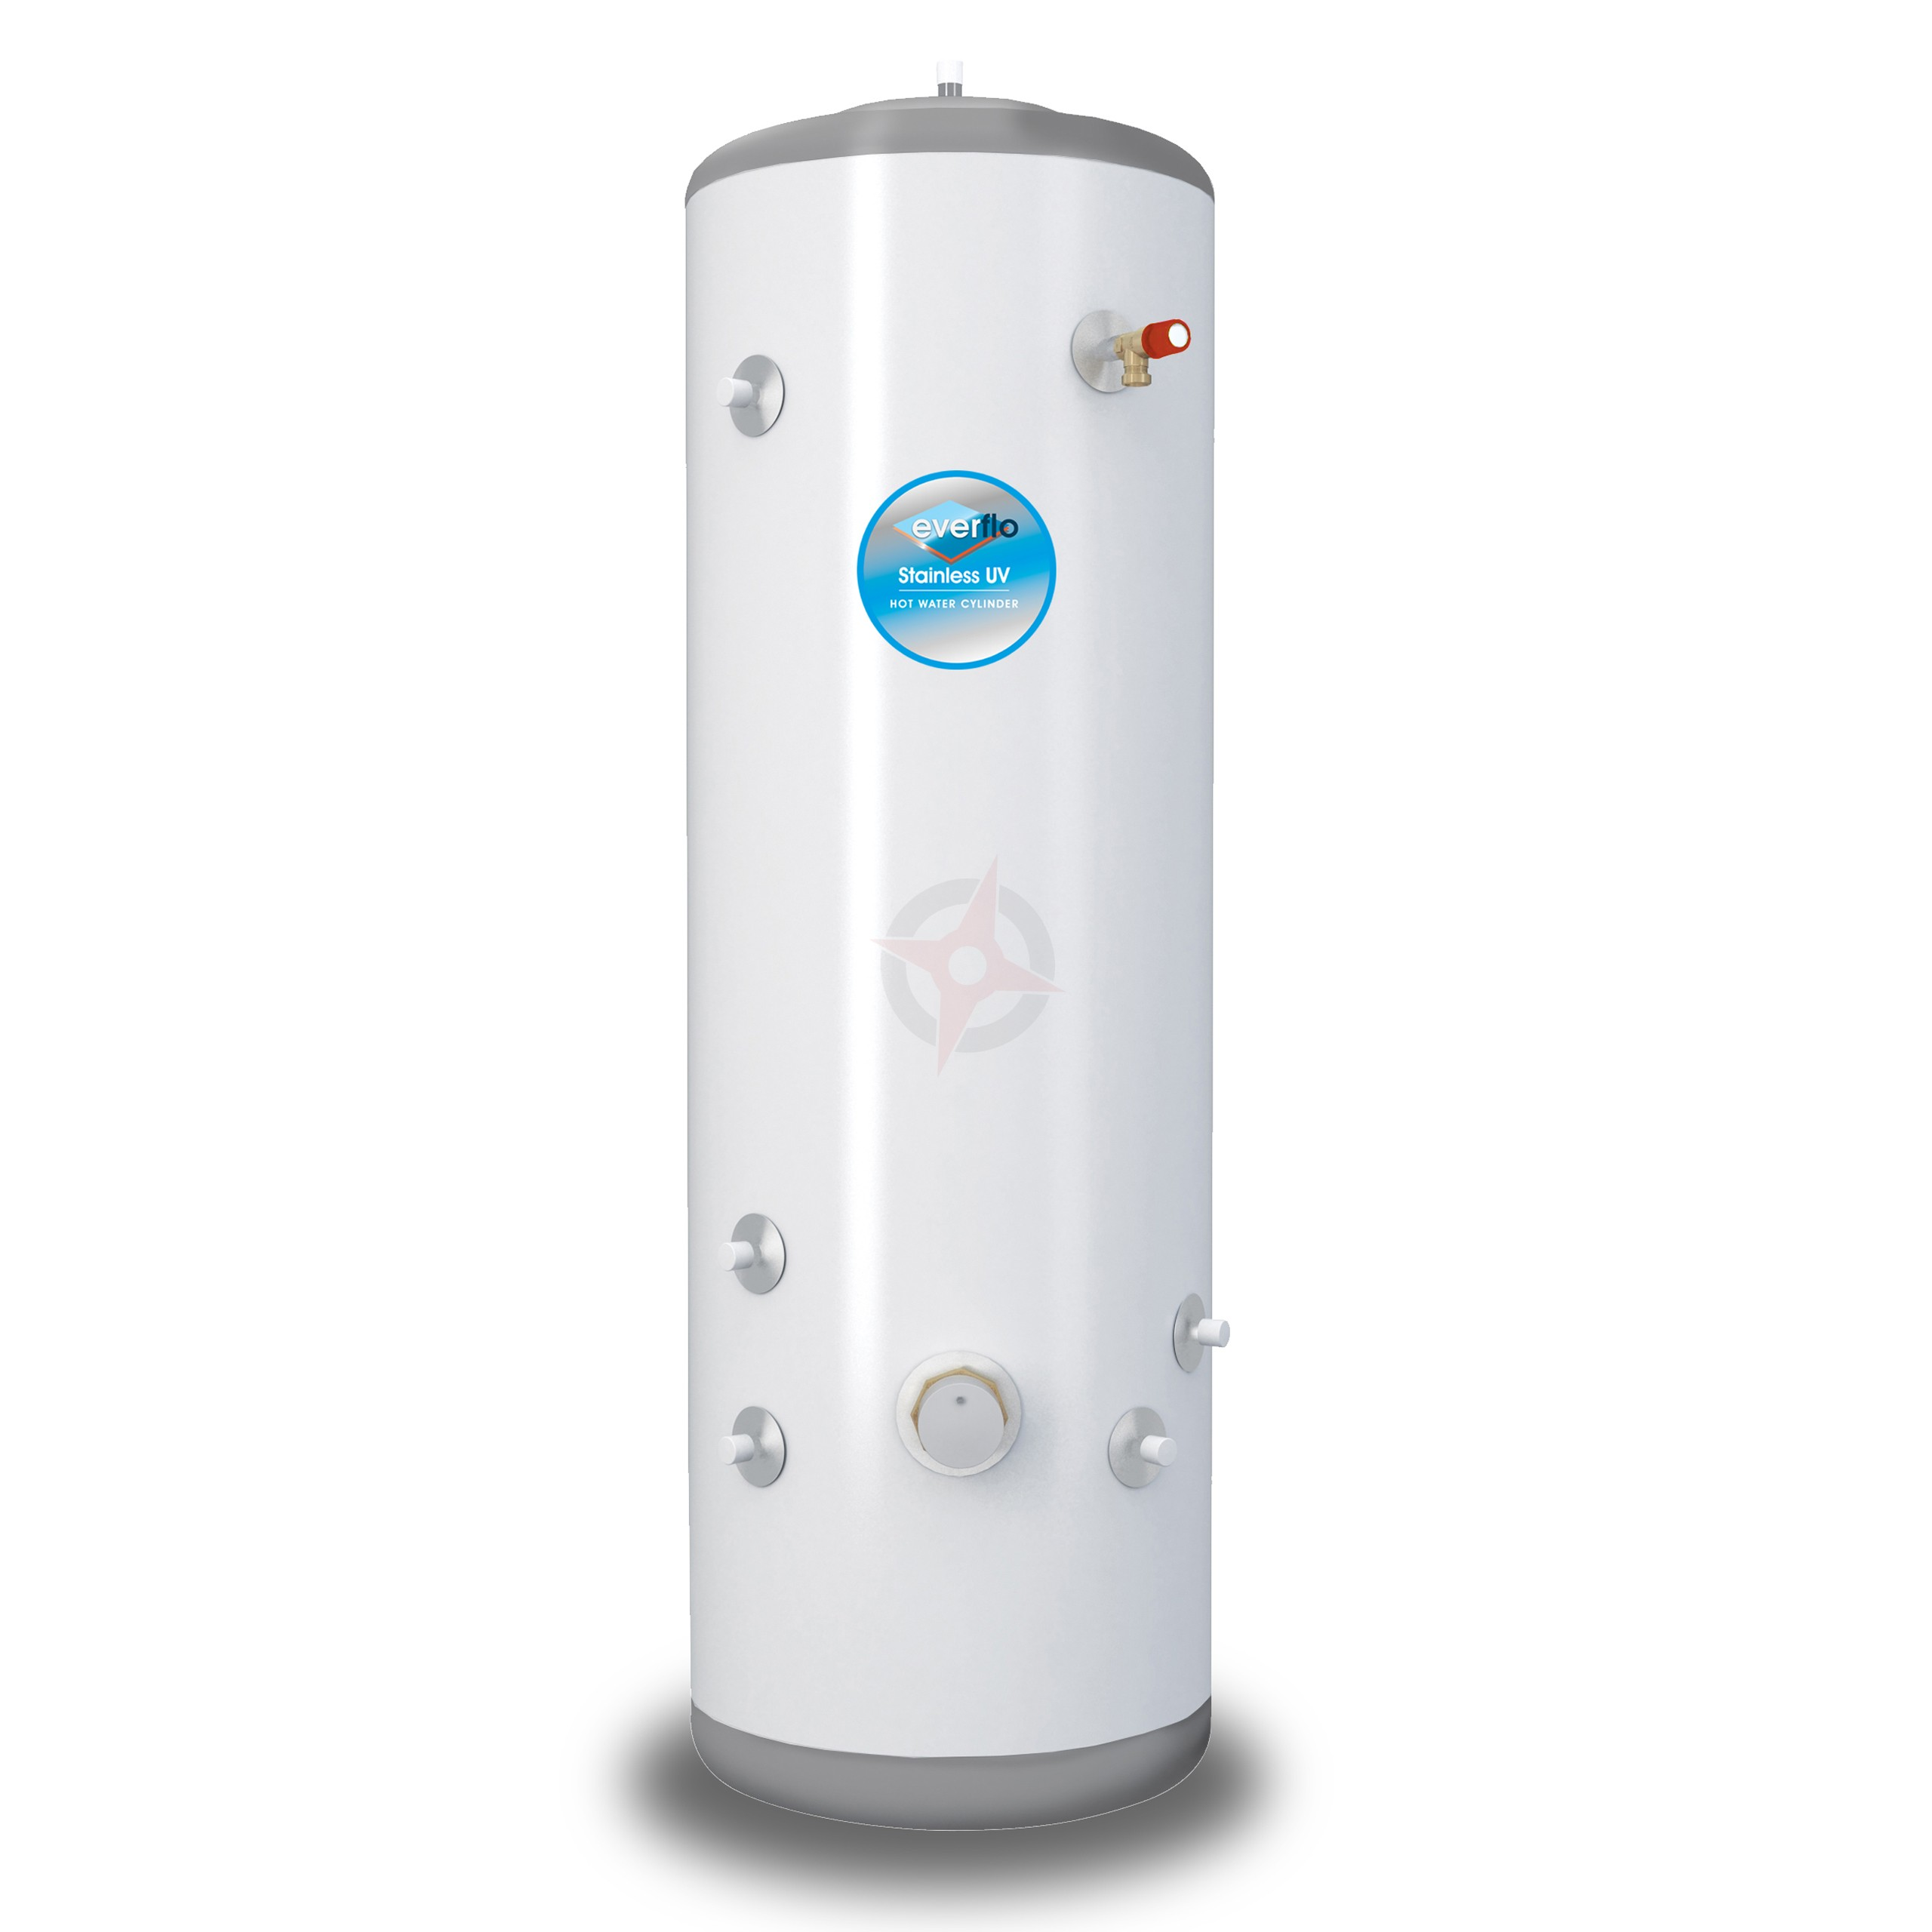 everflo Stainless 300L Indirect Unvented Hot Water Storage Cylinder & Kit